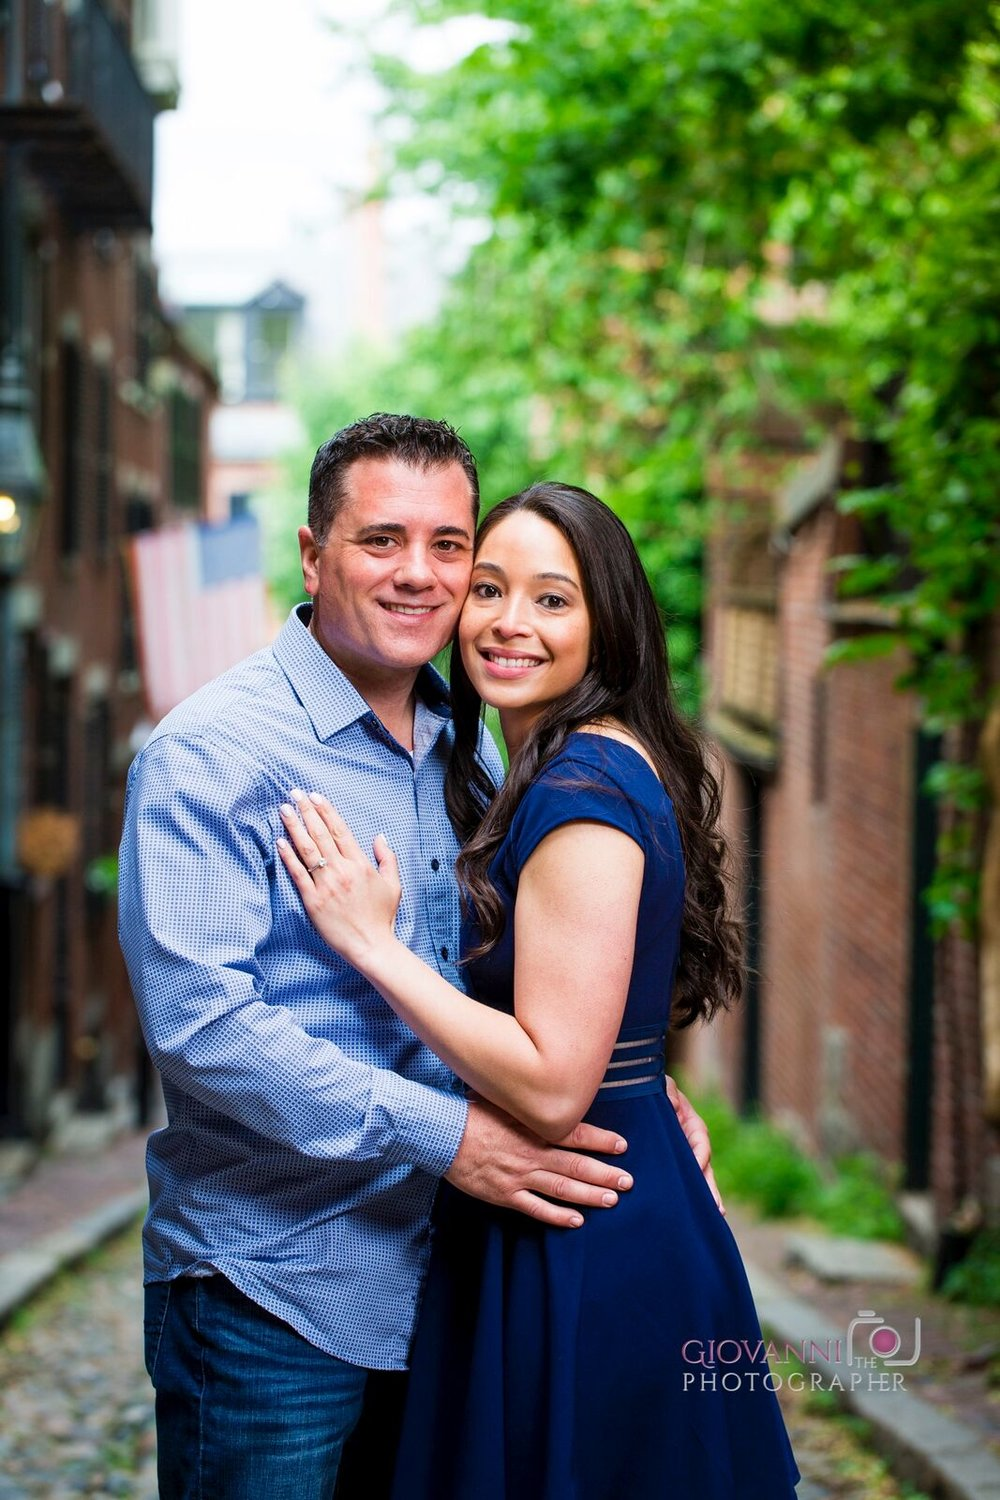 314A6456+Giovanni+The+Photographer+Top+Wedding+Photography+Boston+Engagement+Session+Acorn+Street+Boston+Ma.jpg